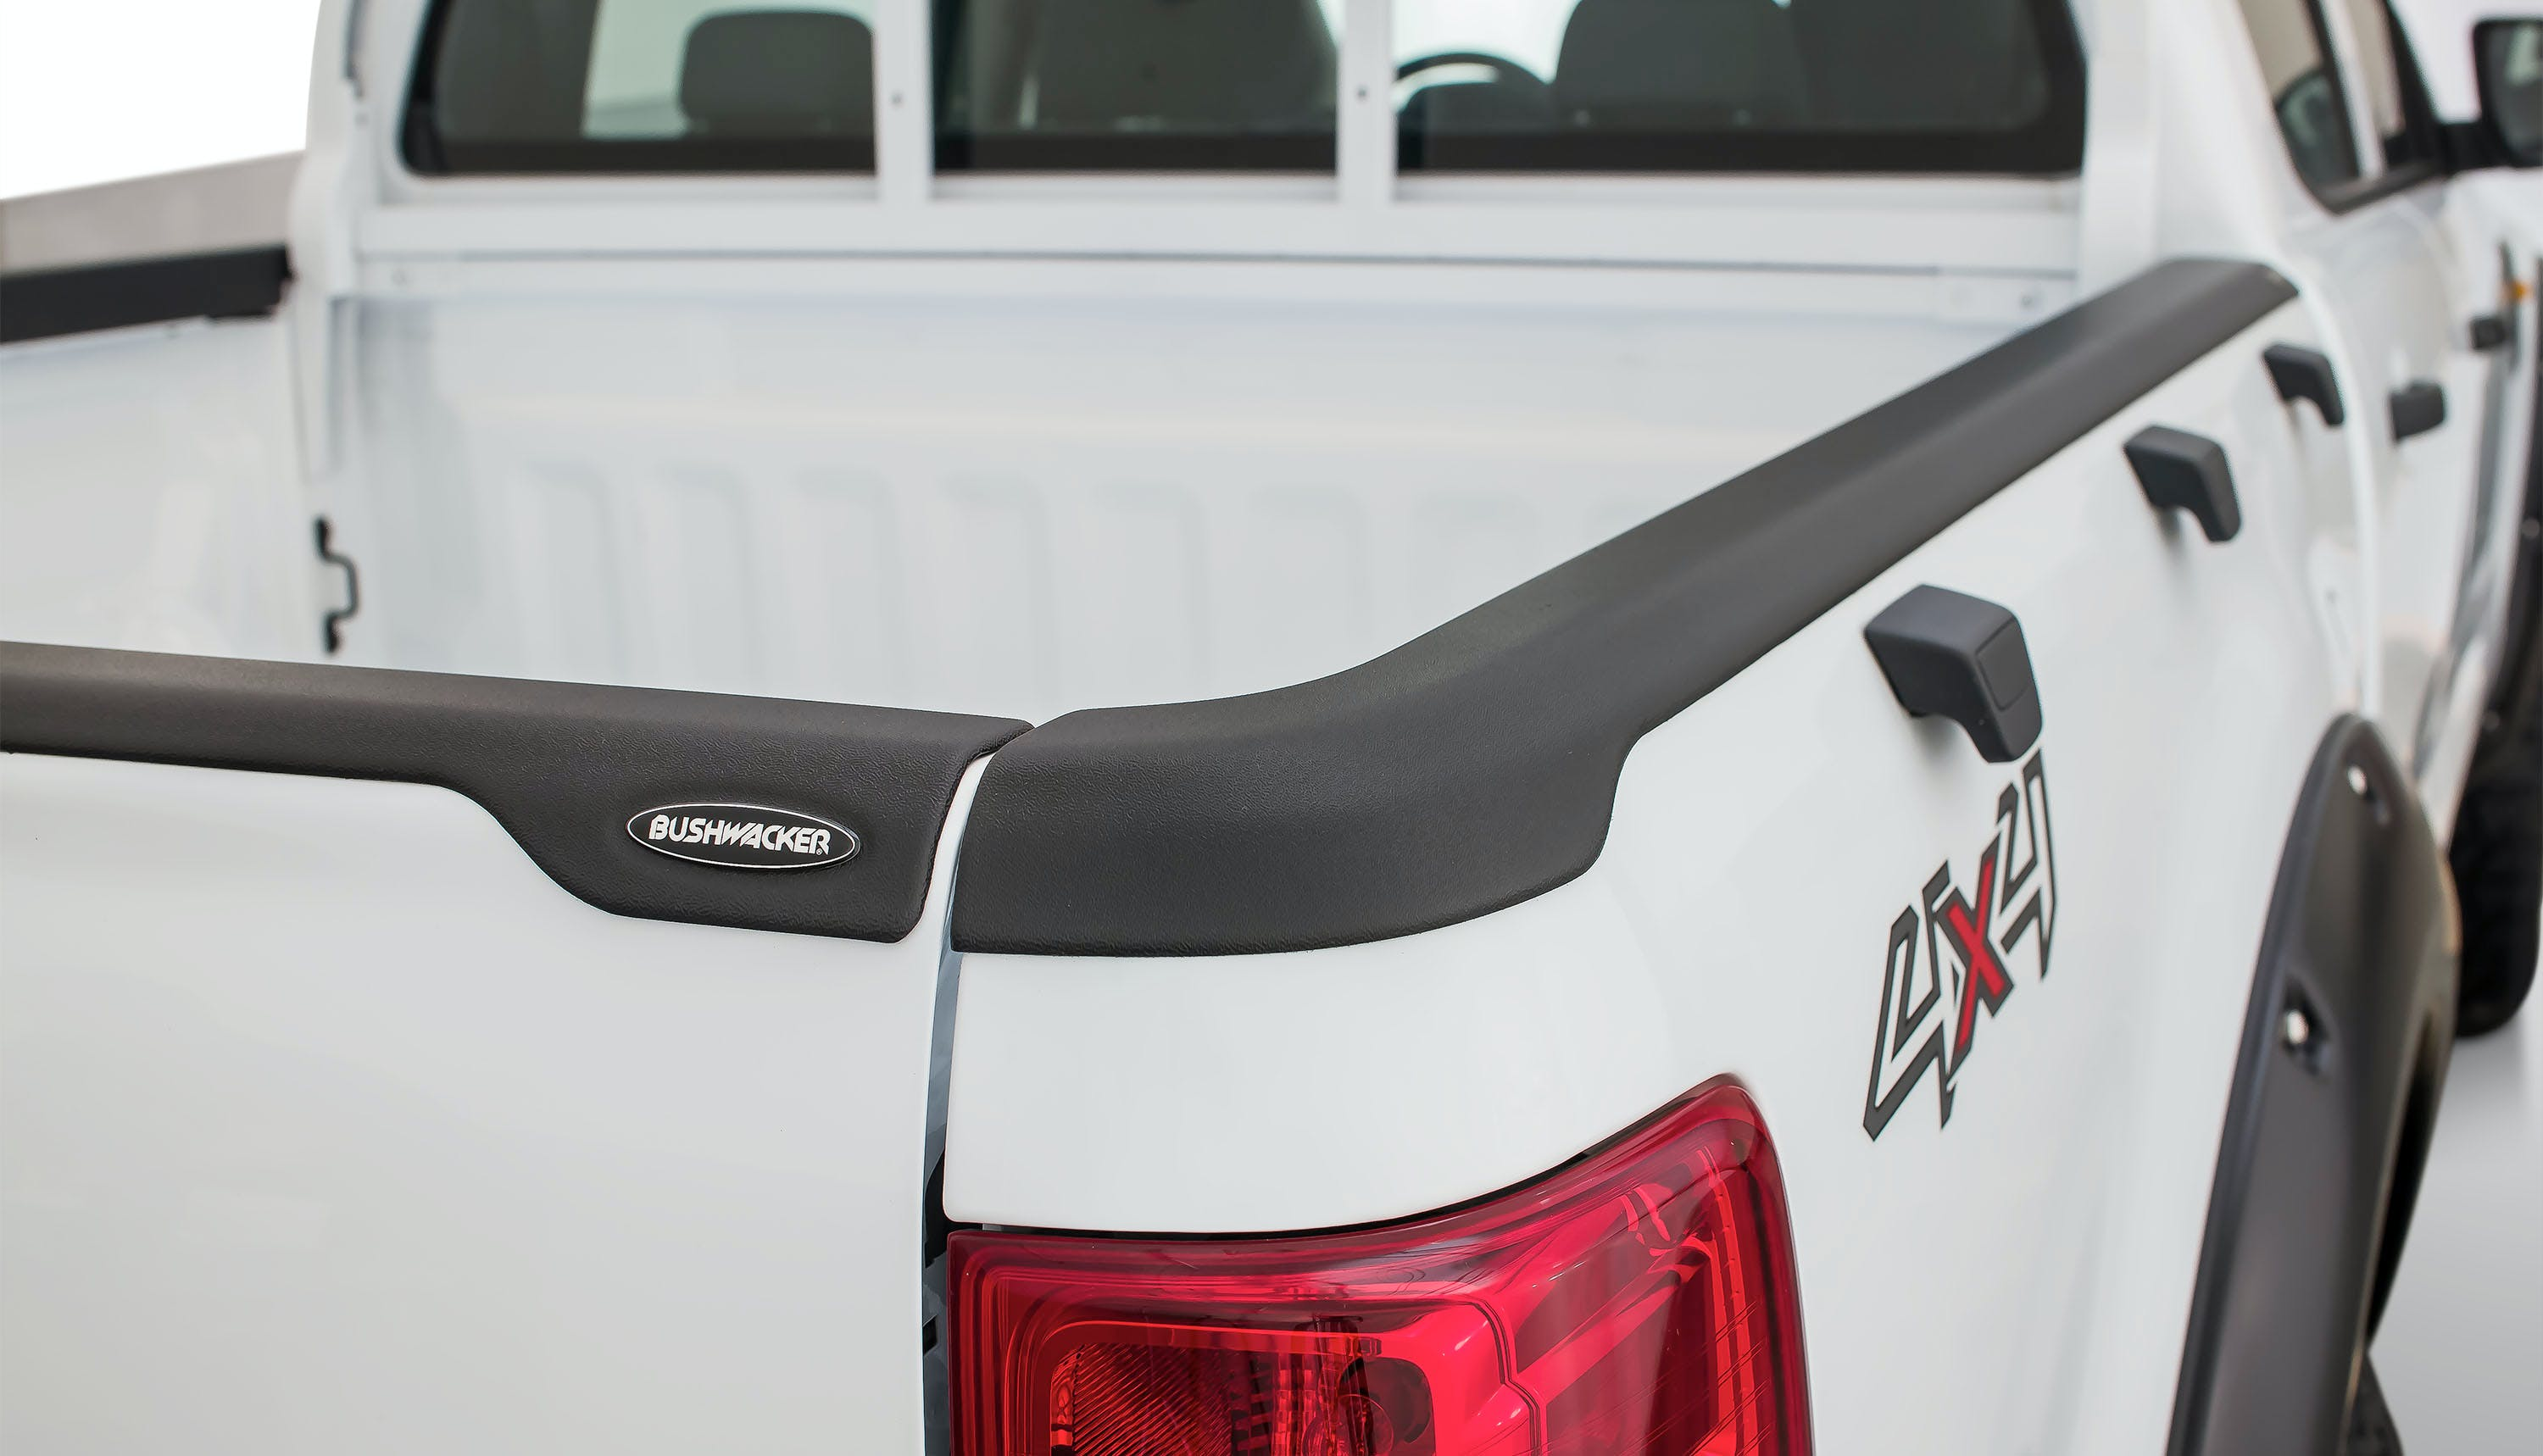 Bed Rail Cap BUSHWACKER TM Truck Bed Side Rail Protector-Ultimate SmoothBack